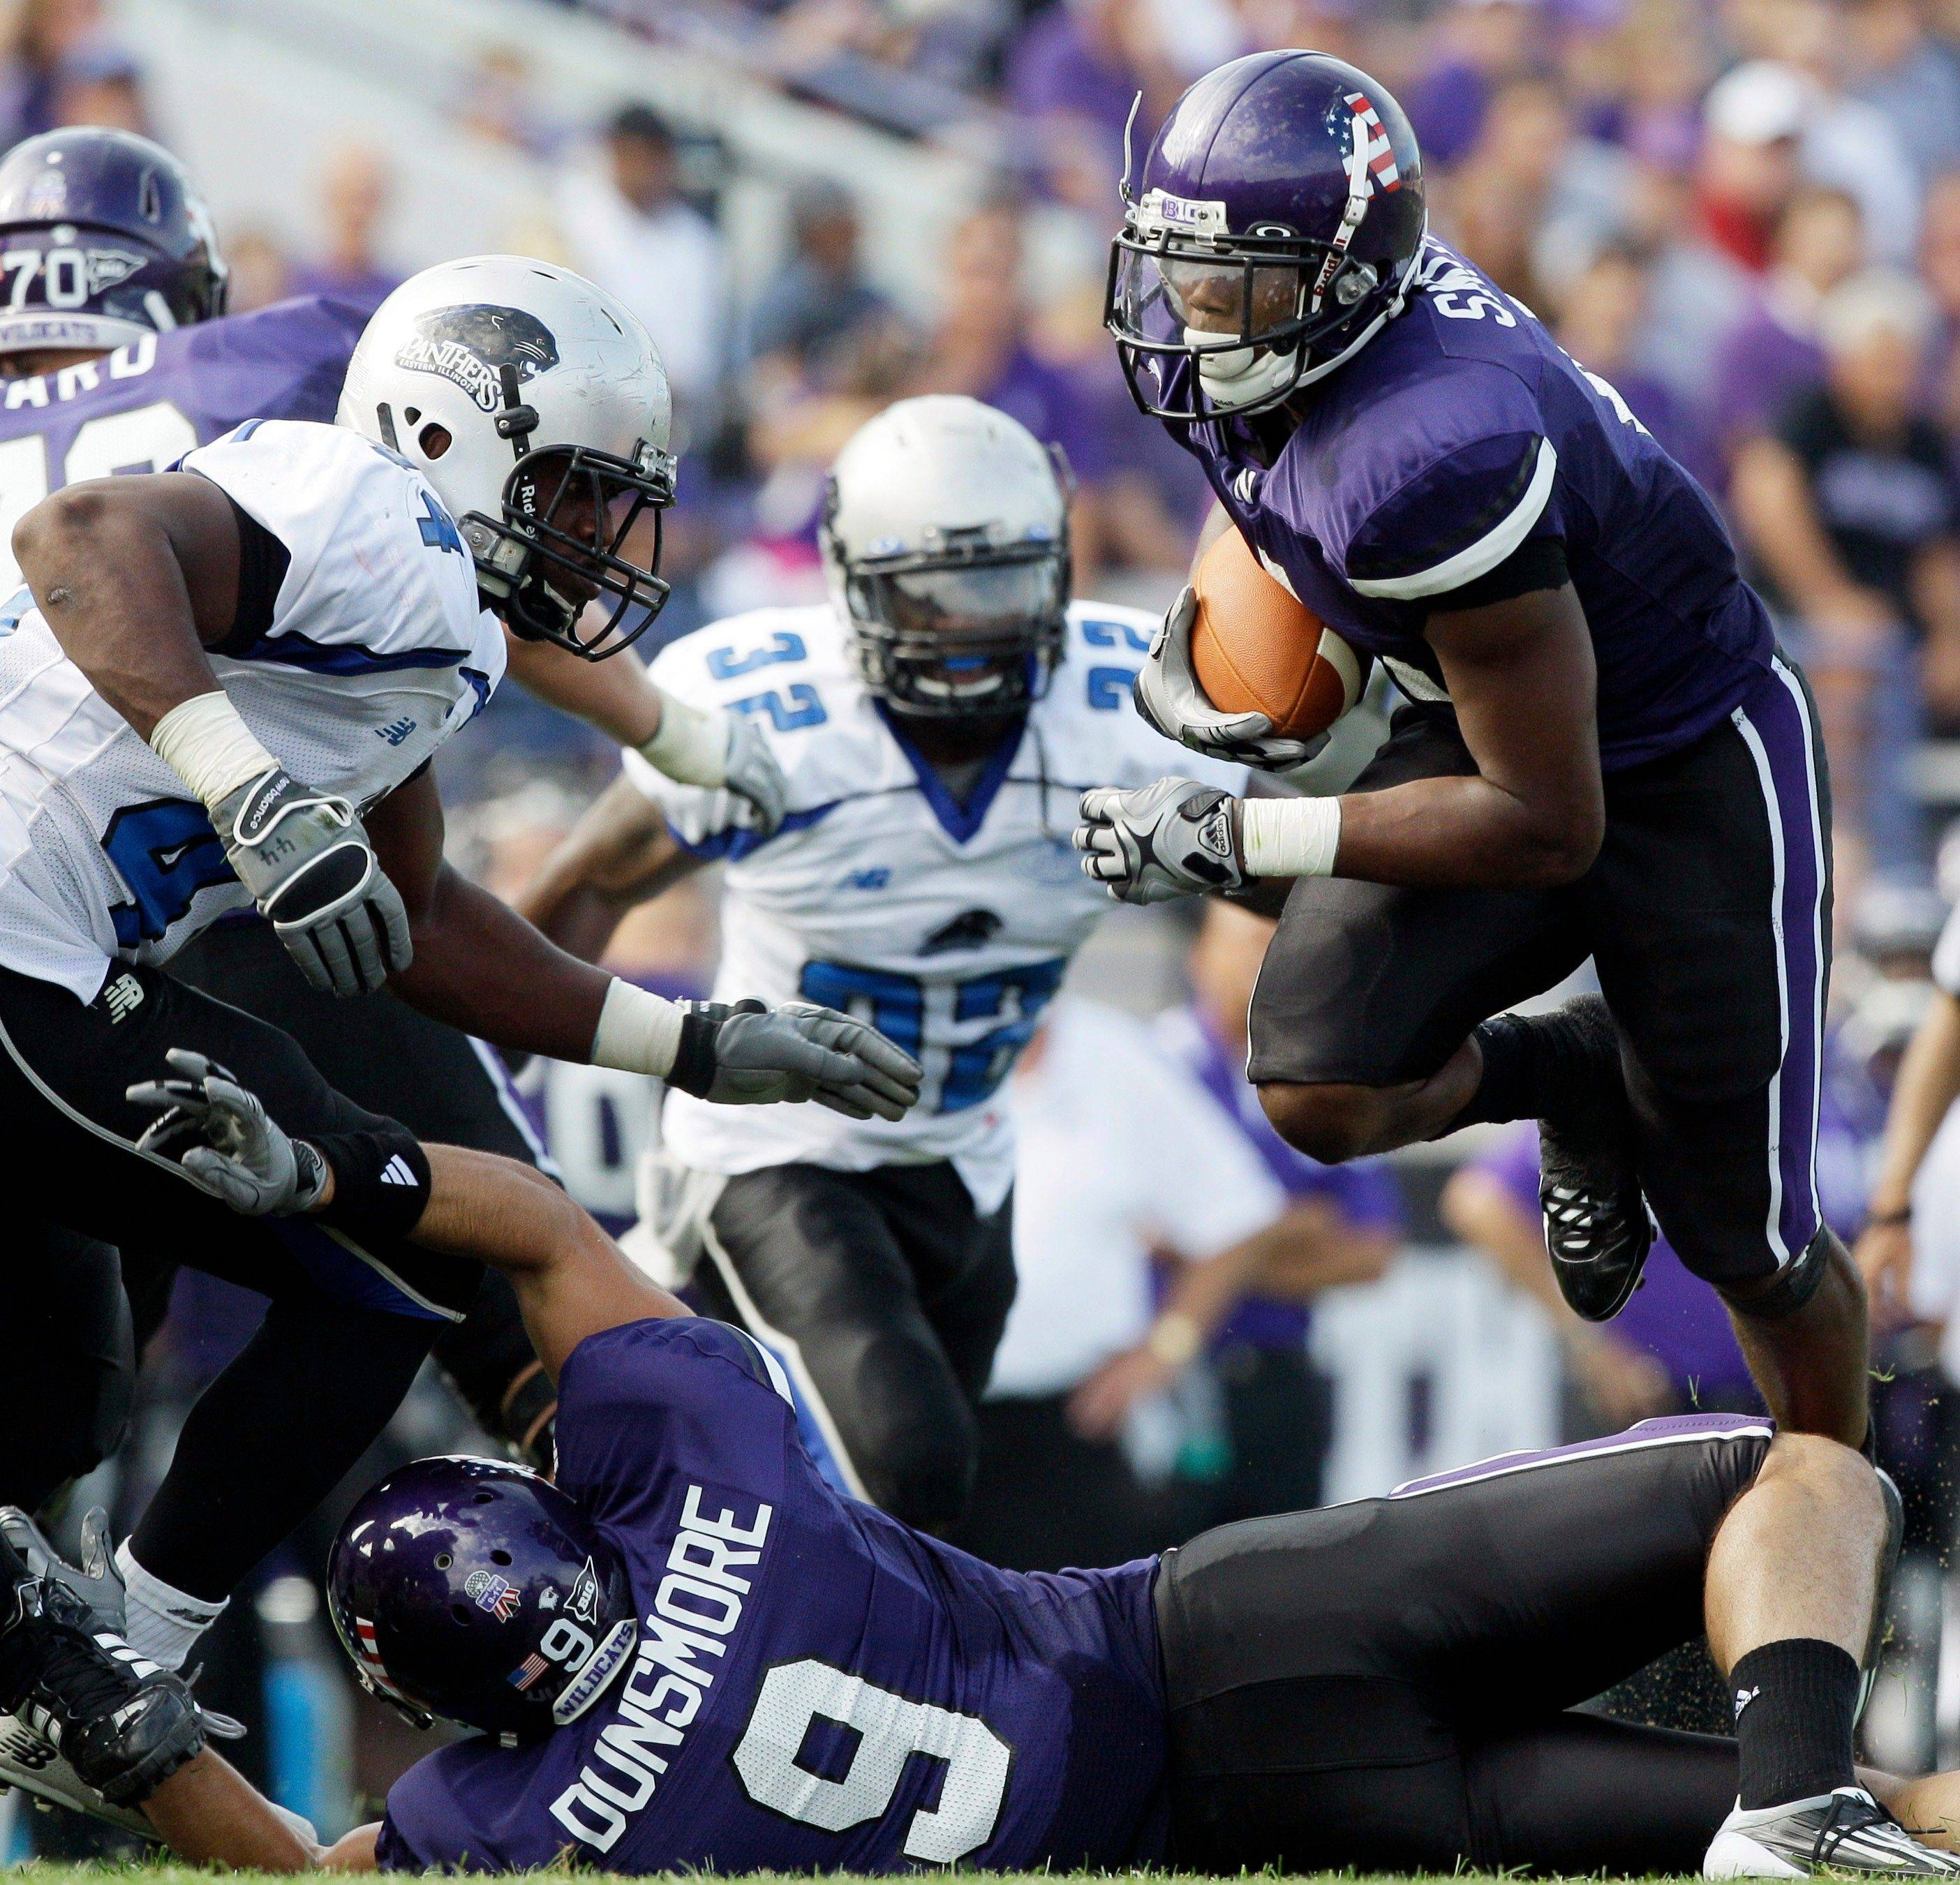 Northwestern running back Adonis Smith, right, leaps over tight end Drake Dunsmore (9) as Eastern Illinois defensive end Judes Amilcar (44), left, tries to tackle him during the second quarter Saturday.